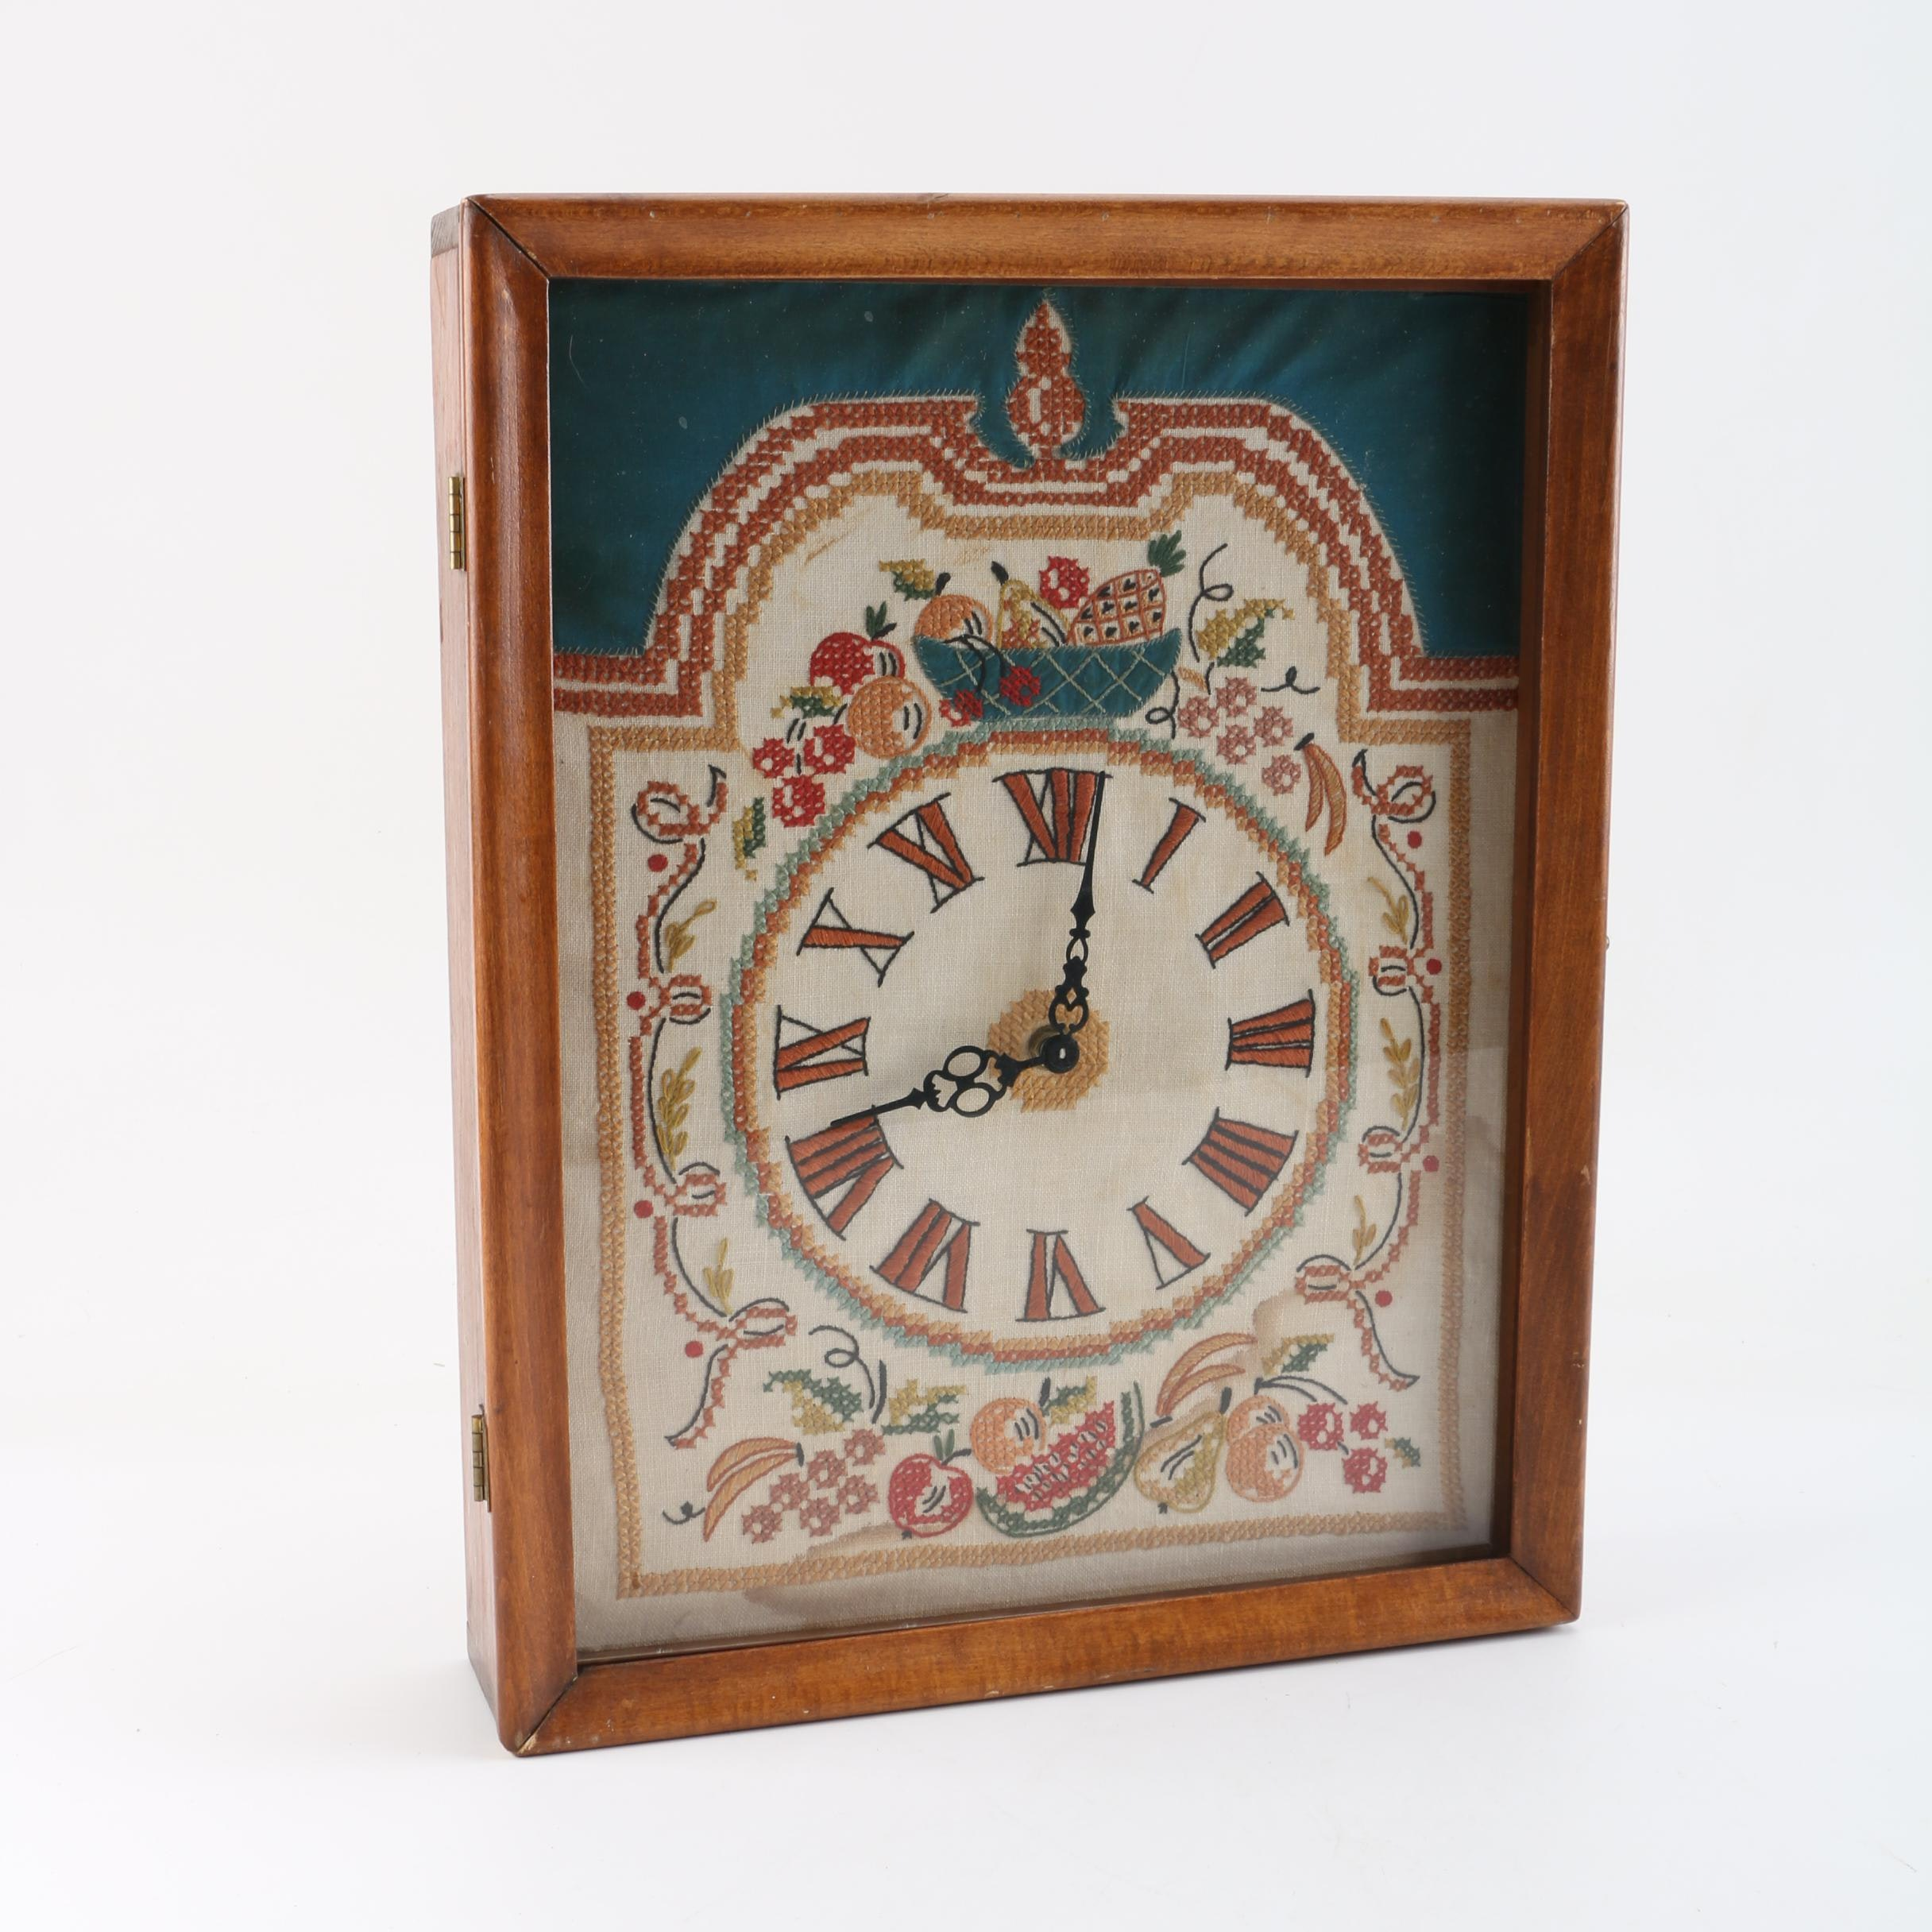 Antique Country Cottage Wall Clock with Cross-Stitched Face